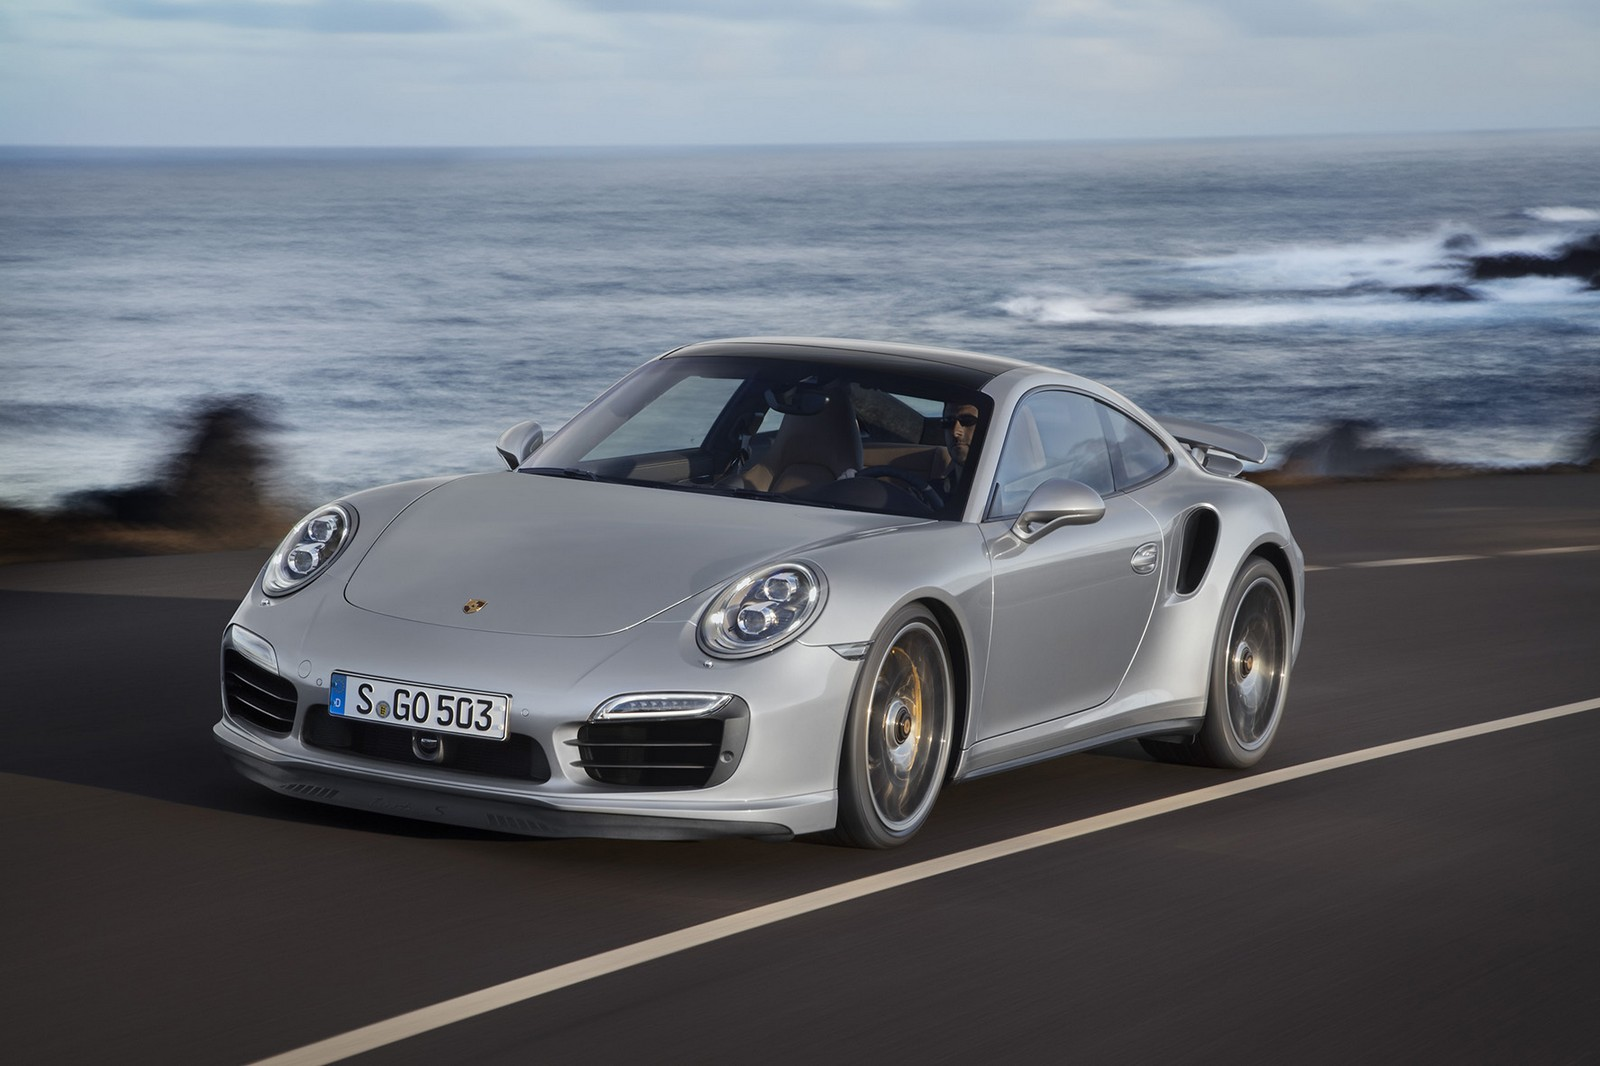 official porsche 991 turbo and turbo s models gtspirit